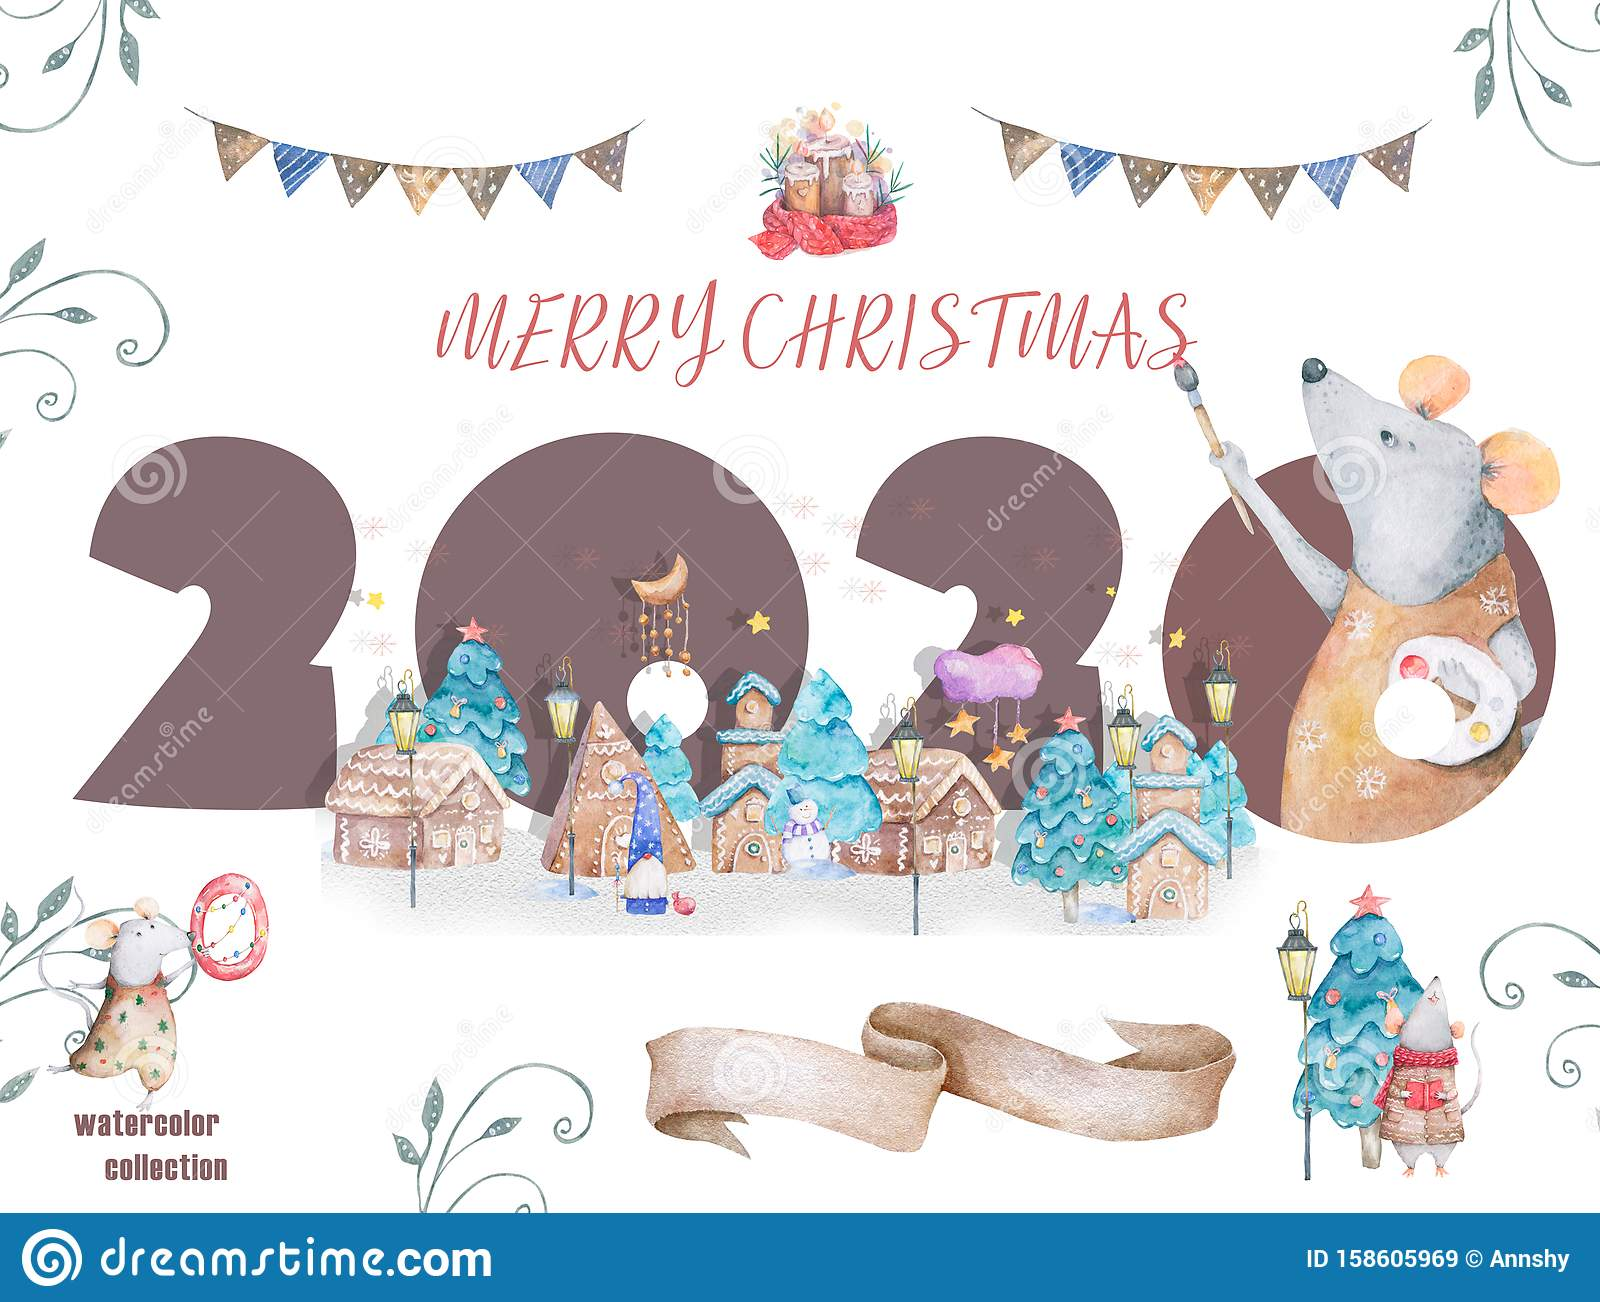 Cute cartoon christmas rat mouse christmas card. Watercolor hand drawn animal illustration. New Year 2020 holiday